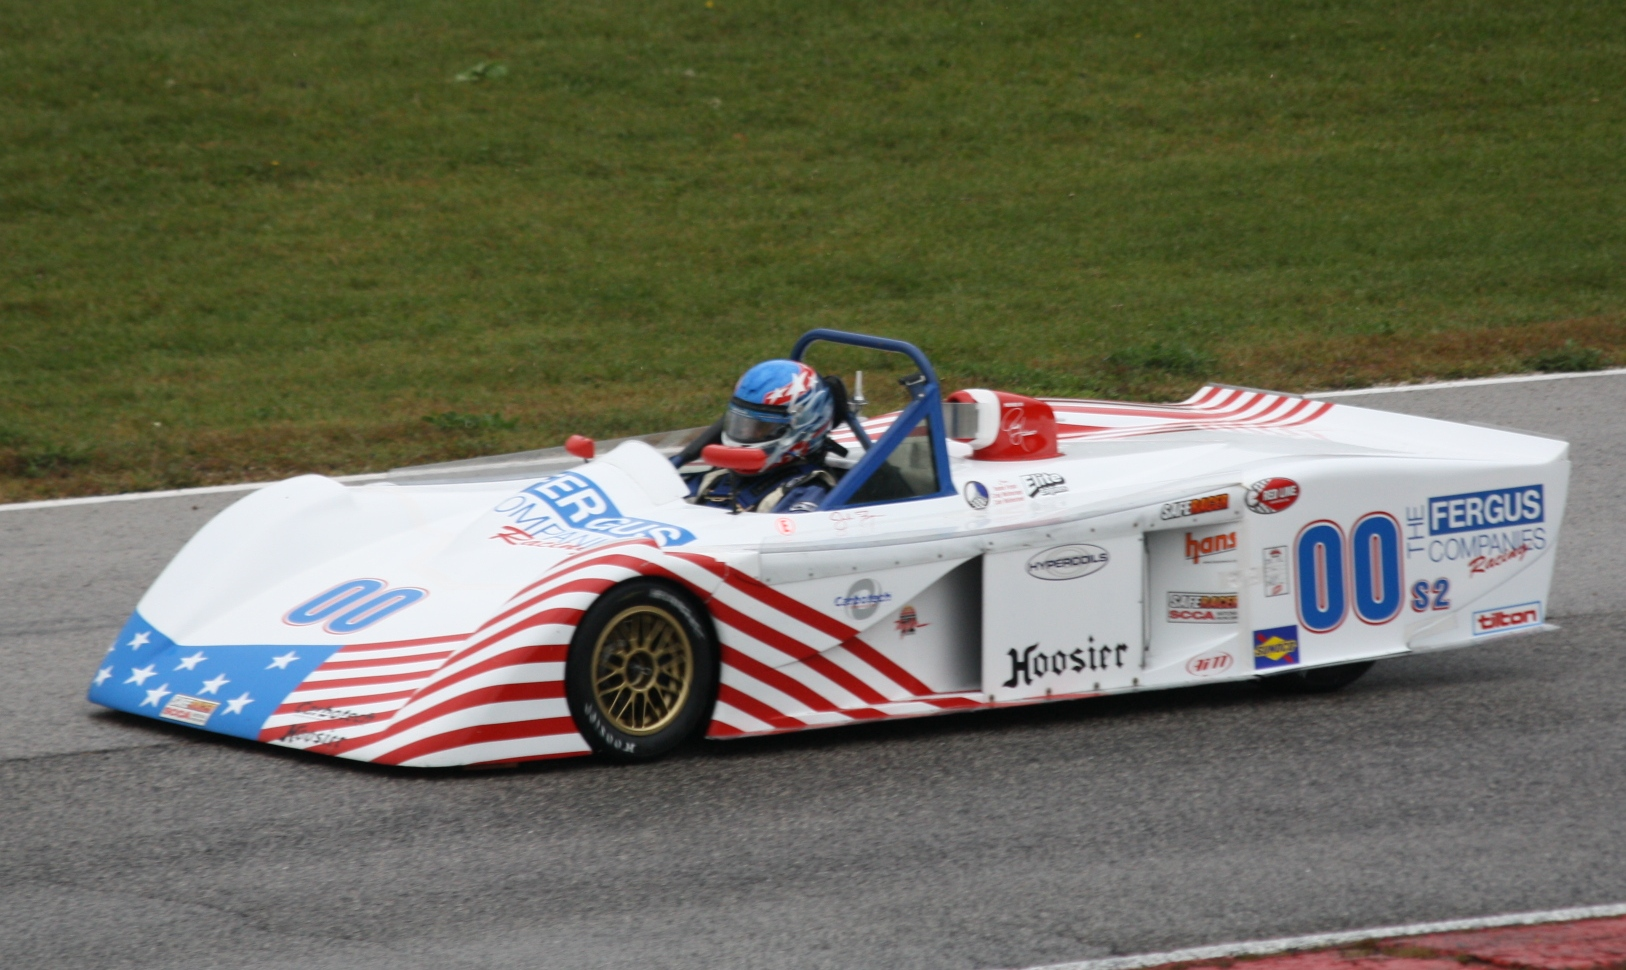 file john fergus sports 2000 winner 2011 scca national wikimedia commons. Black Bedroom Furniture Sets. Home Design Ideas